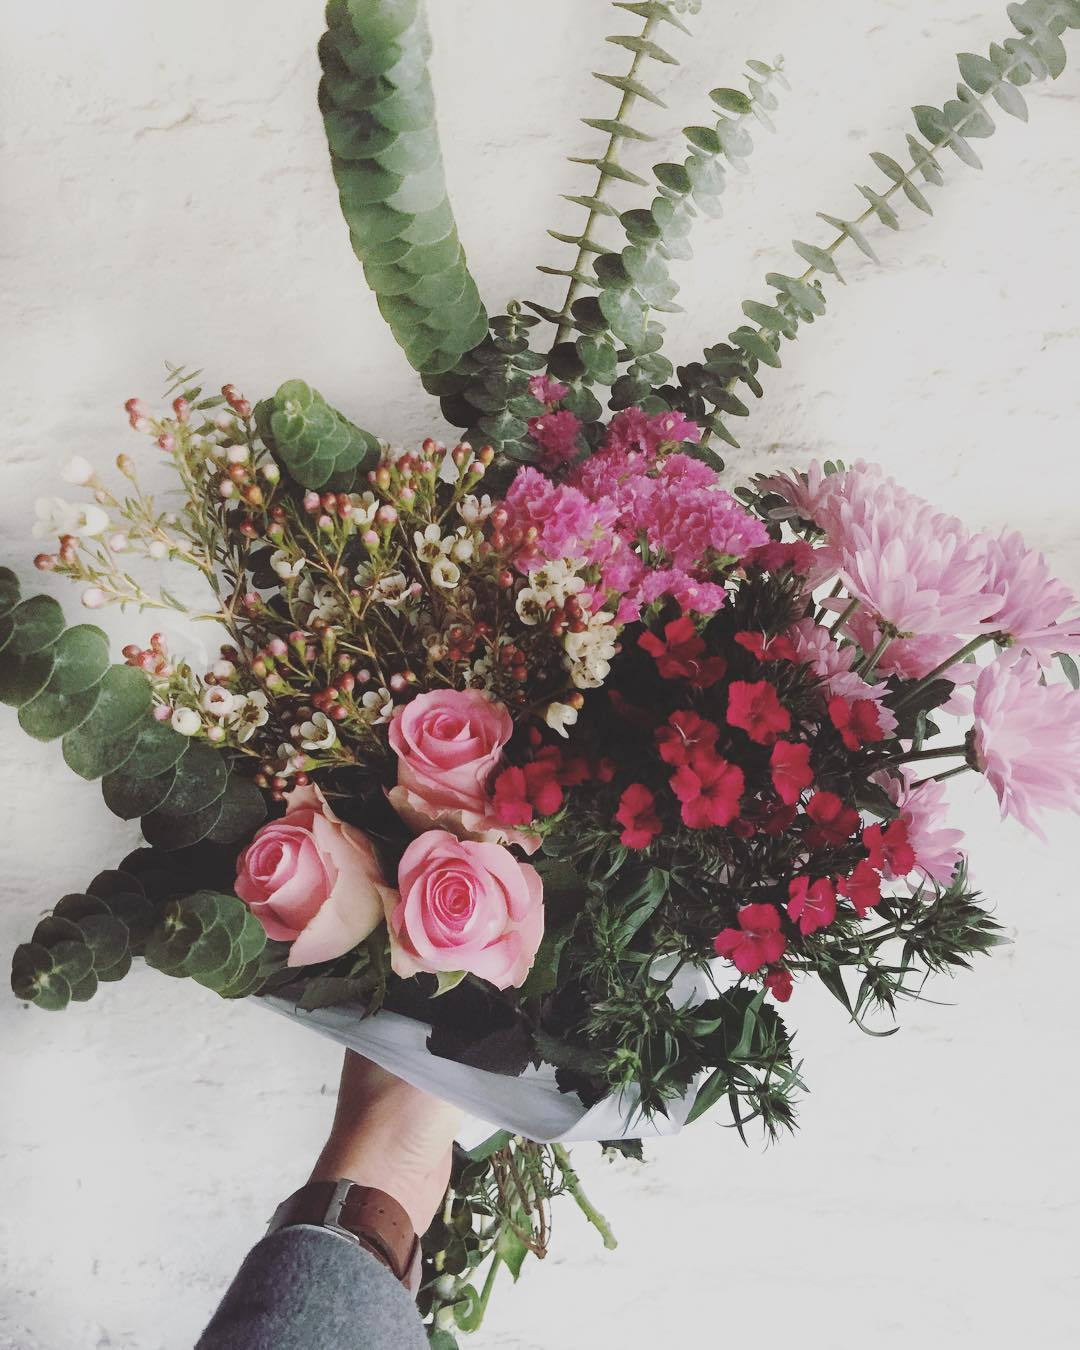 Posies posies posies ?Get your Posy Preorder in for Tuesday, Wednesday or Friday's Posy in! R225 (single) or R450 (double) including delivery within our free delivery zone ? Single Posy pictured.